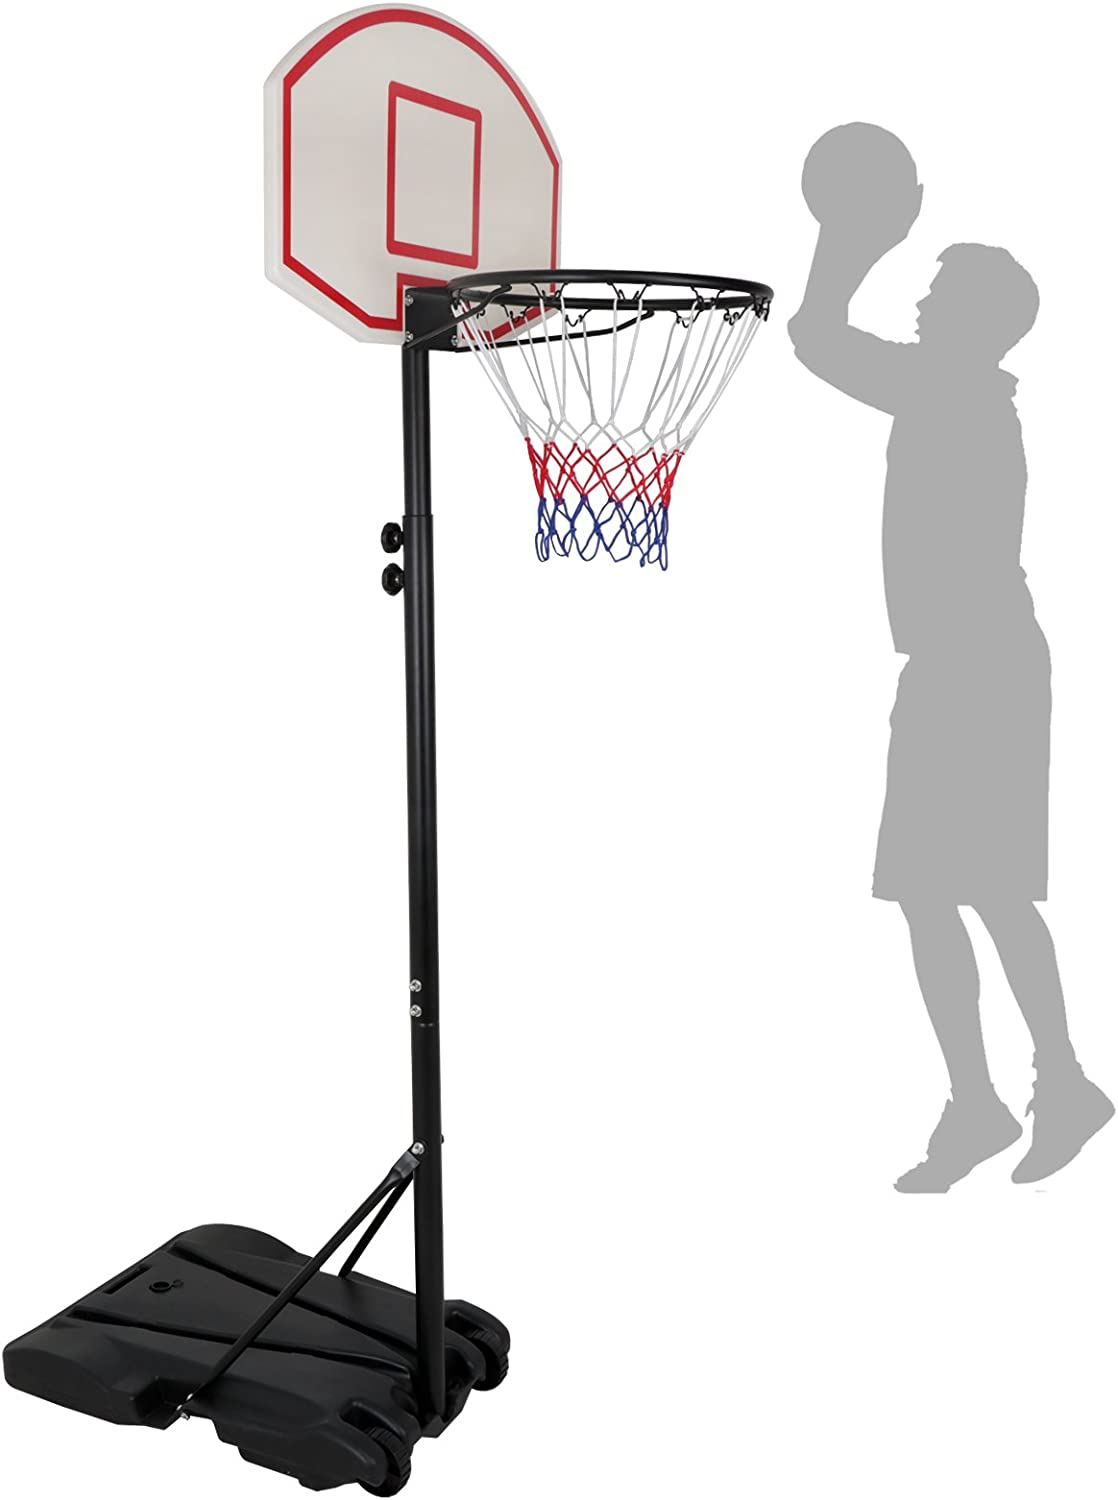 Adjustable Height 30-62 Inches Portable Stand Basketball Set Sport Game Play Toys Set with Ball Years Old. Net and Ball Pump Indoor and Outdoor Fun Toys for Toddlers 3 Basketball Hoop for Kids